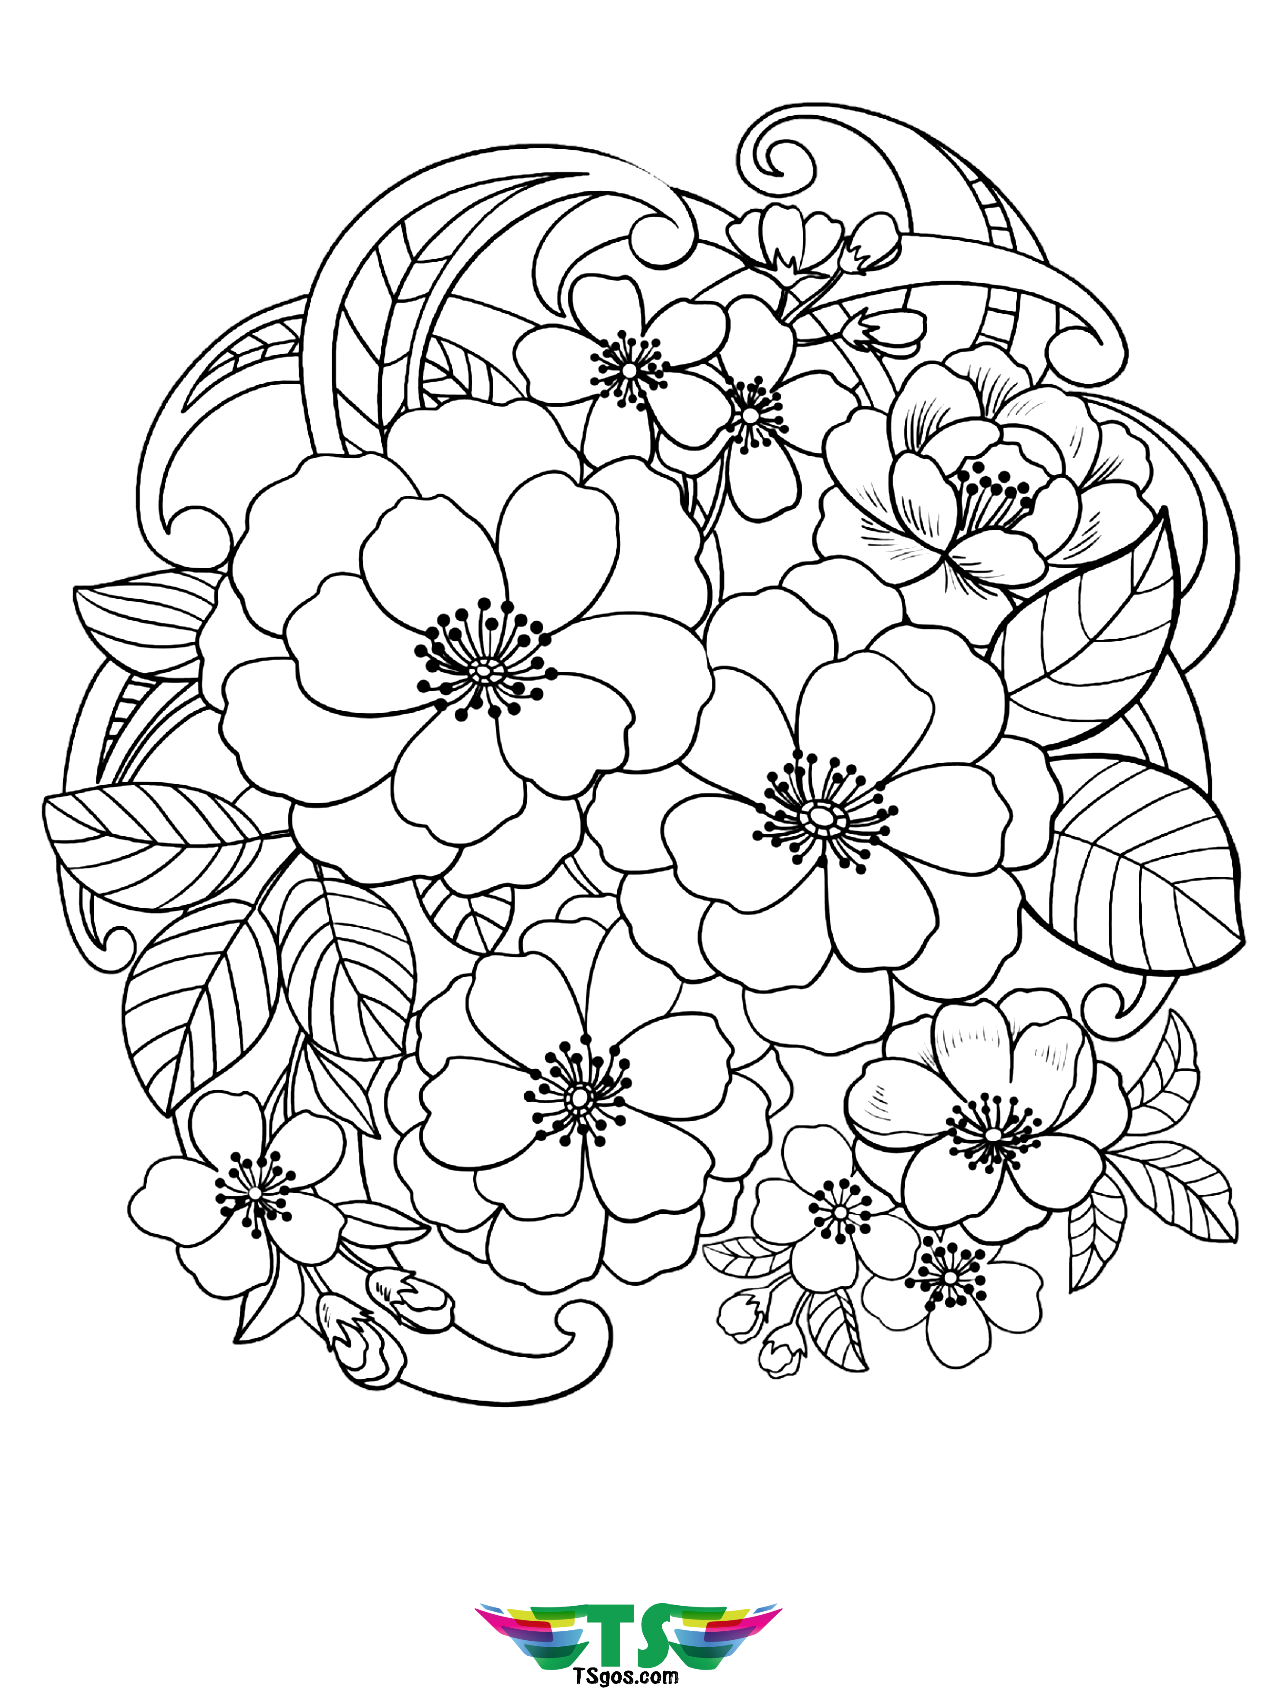 pictures of flowers to color detailed flower coloring pages to download and print for free color flowers to of pictures